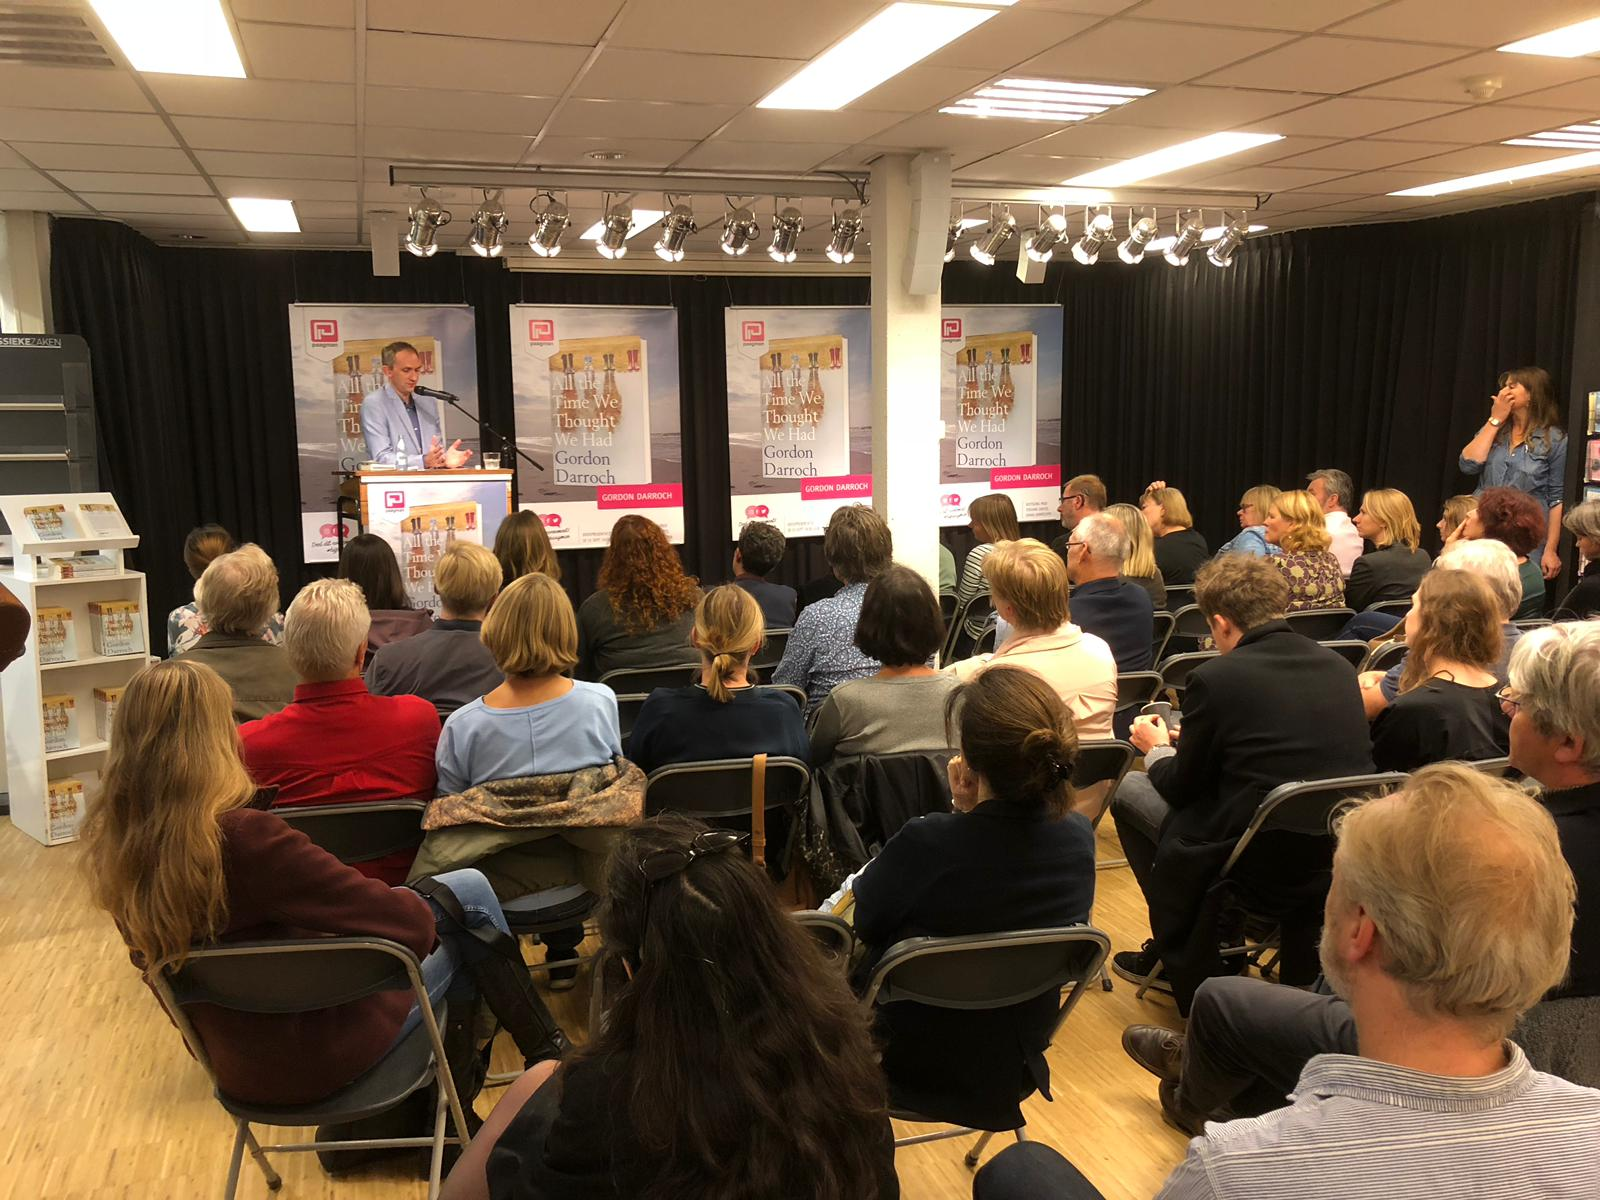 Gordon Darroch presenting his book All The Time We Thought We Had at Paagman bookstore in Scheveningen, The Hague, September 25 2018